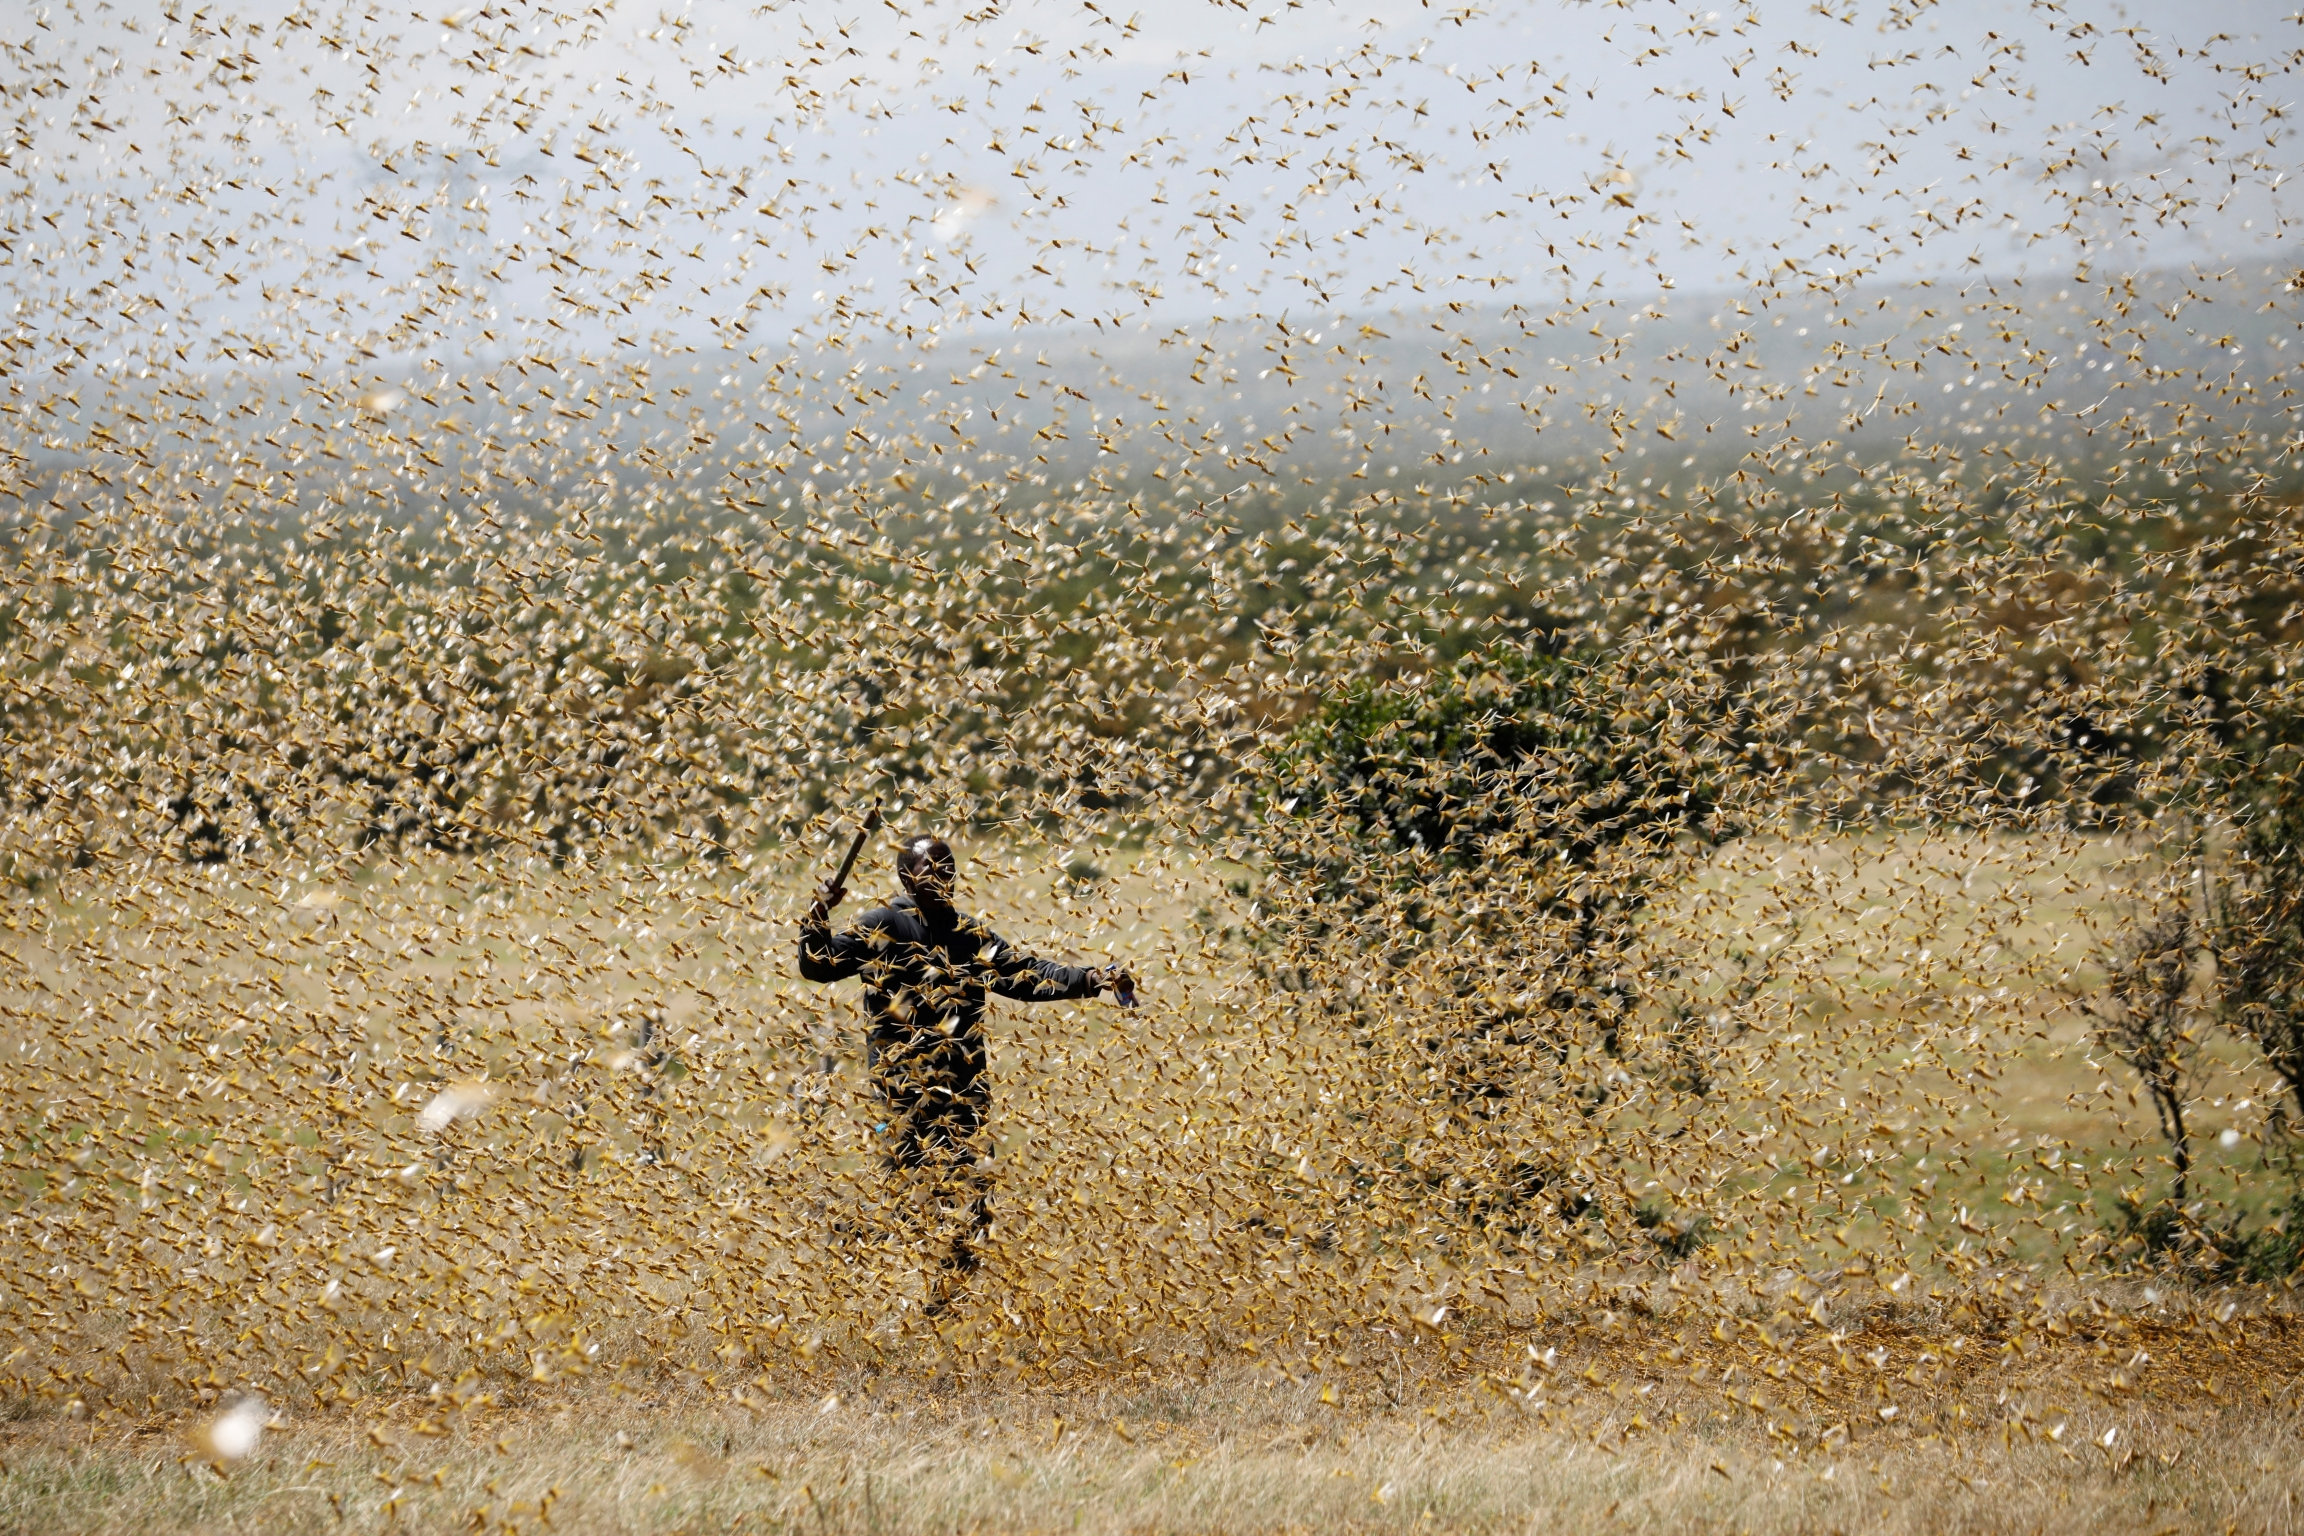 A man attempts to fend-off a swarm of desertlocustsat a ranch near the town of Nanyuki in Laikipia county,Kenya, Feb. 21, 2020.